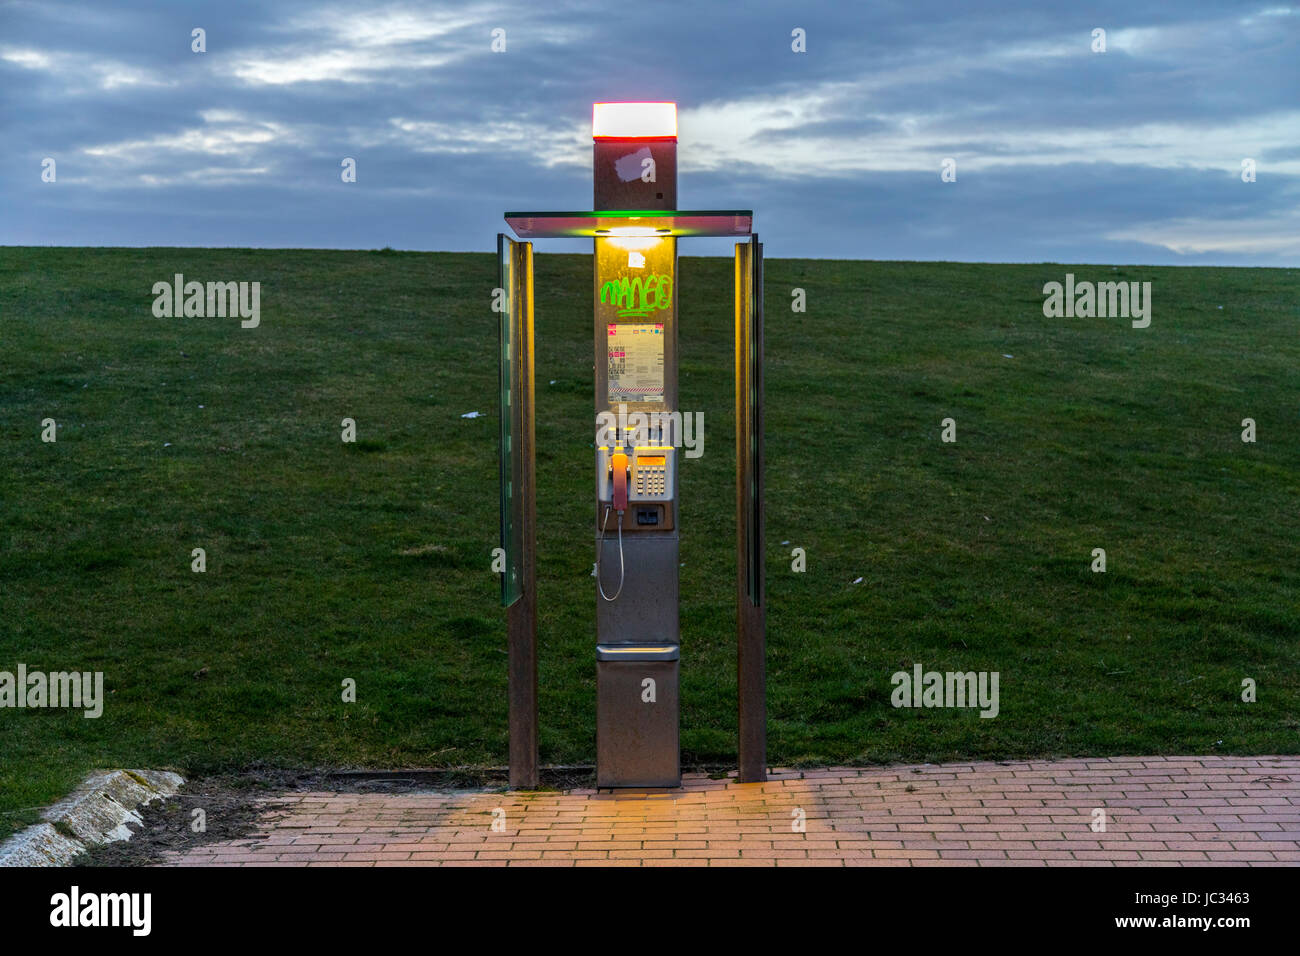 North Sea island, Norderney, East Frisia, Germany, old public phone booth, pay phone, by German Telekom company, - Stock Image